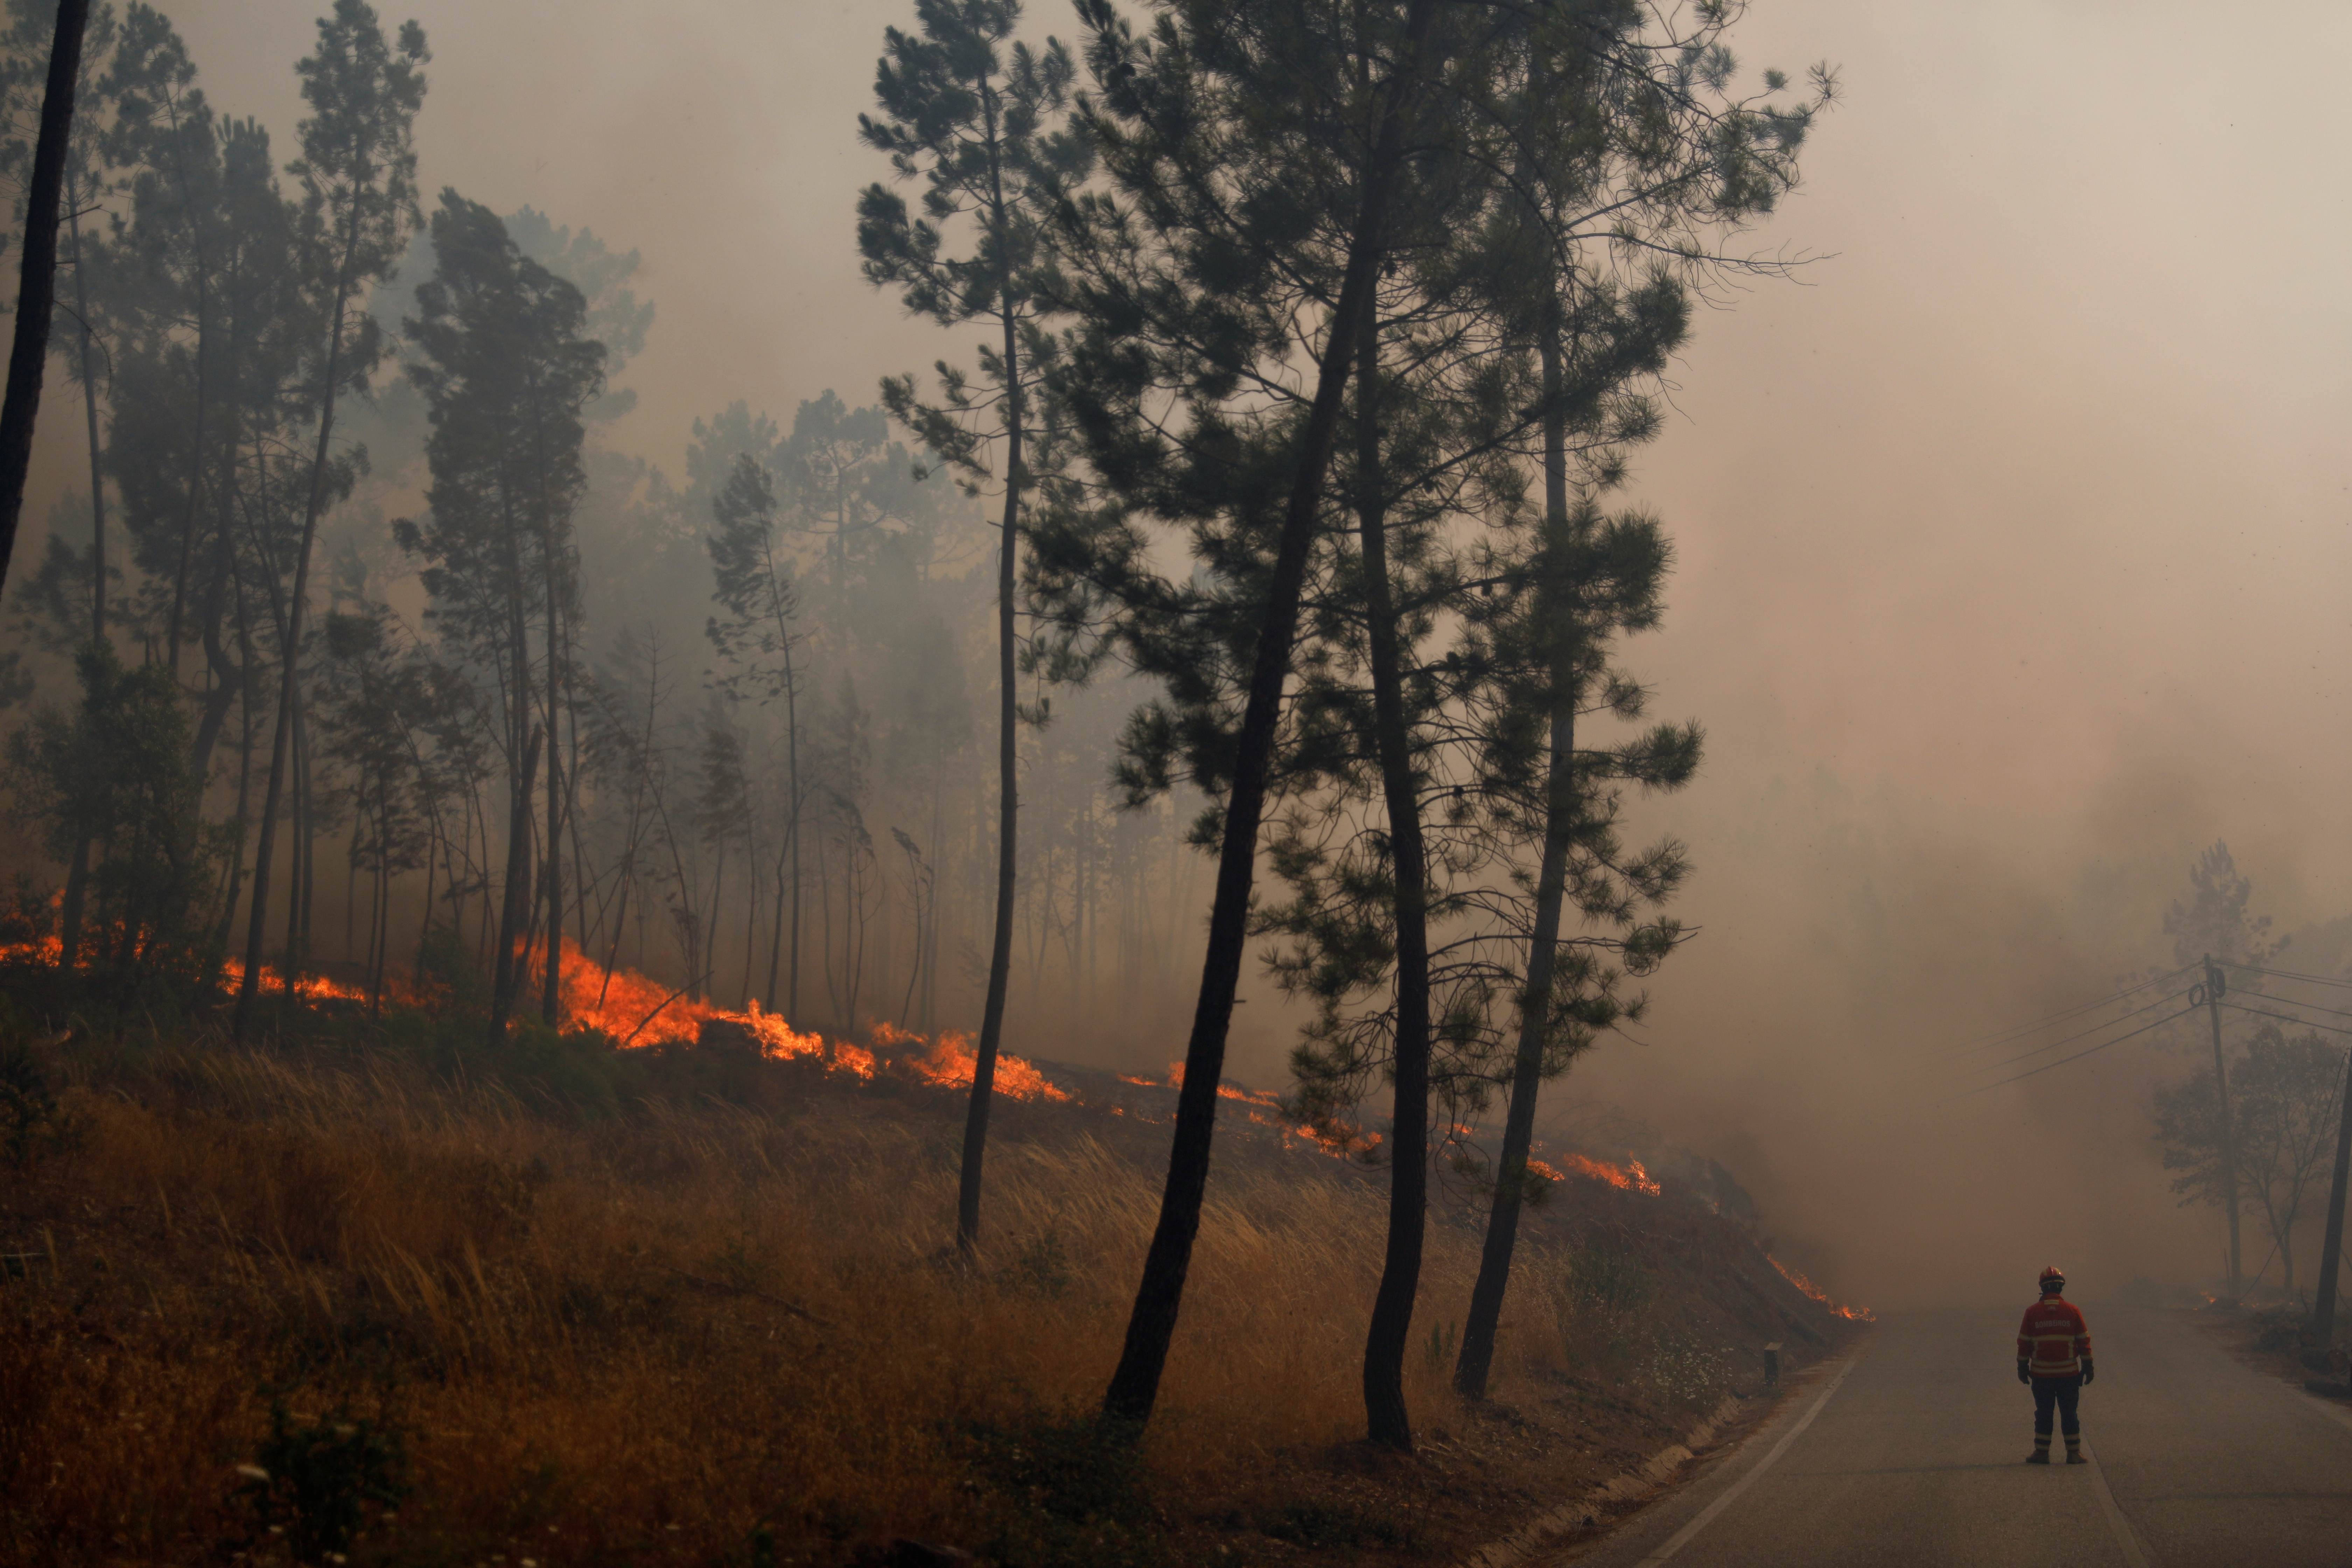 Firefighters help to put out a forest fire in Chaveira, Portugal July 22, 2019. REUTERS/Rafael Marchante